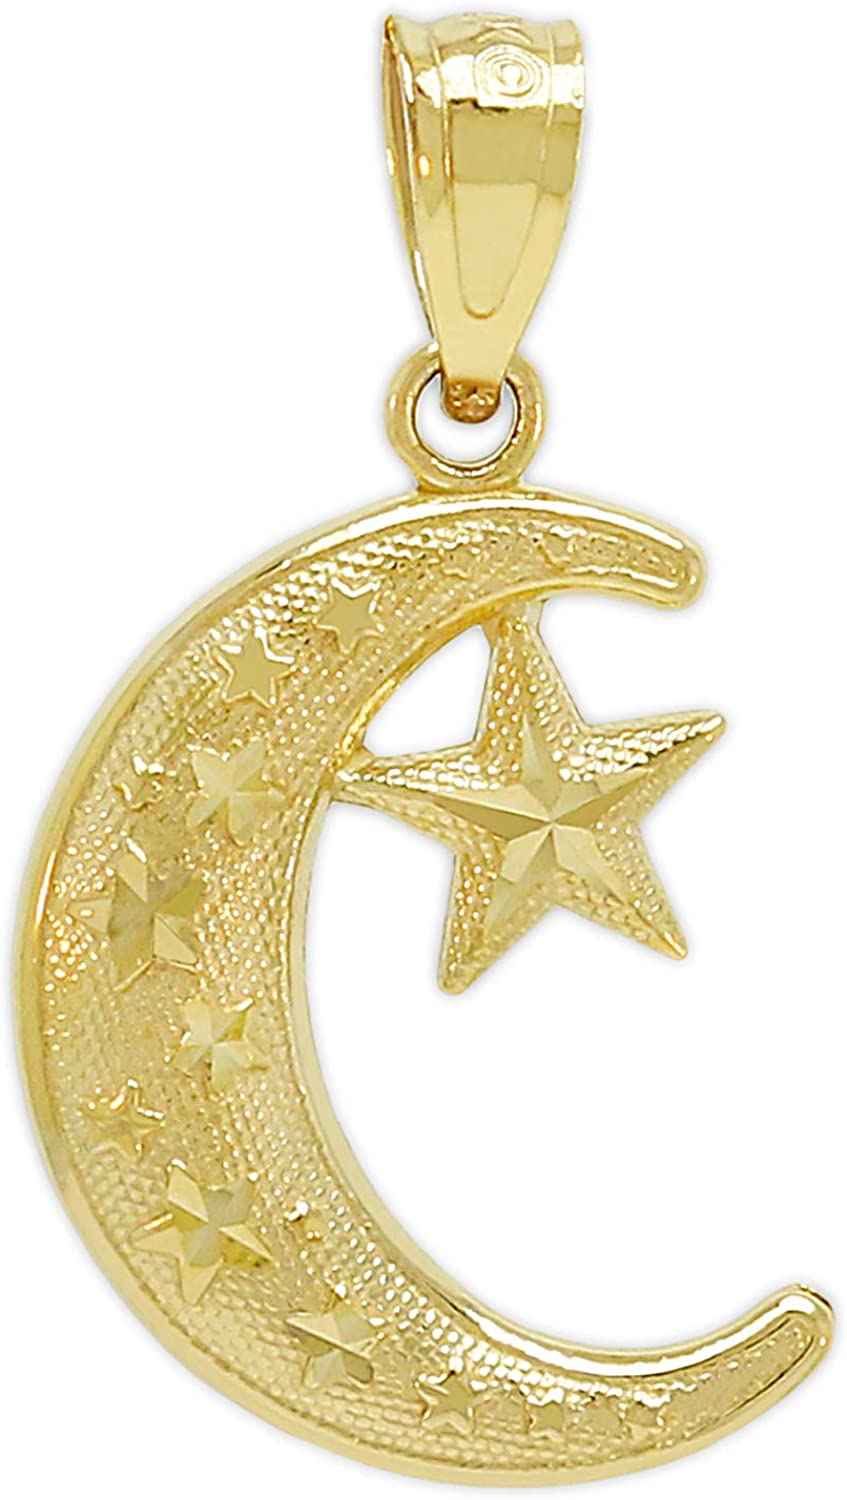 Charm America - Gold Moon Max 69% OFF Star and Karat 10 Now free shipping Solid